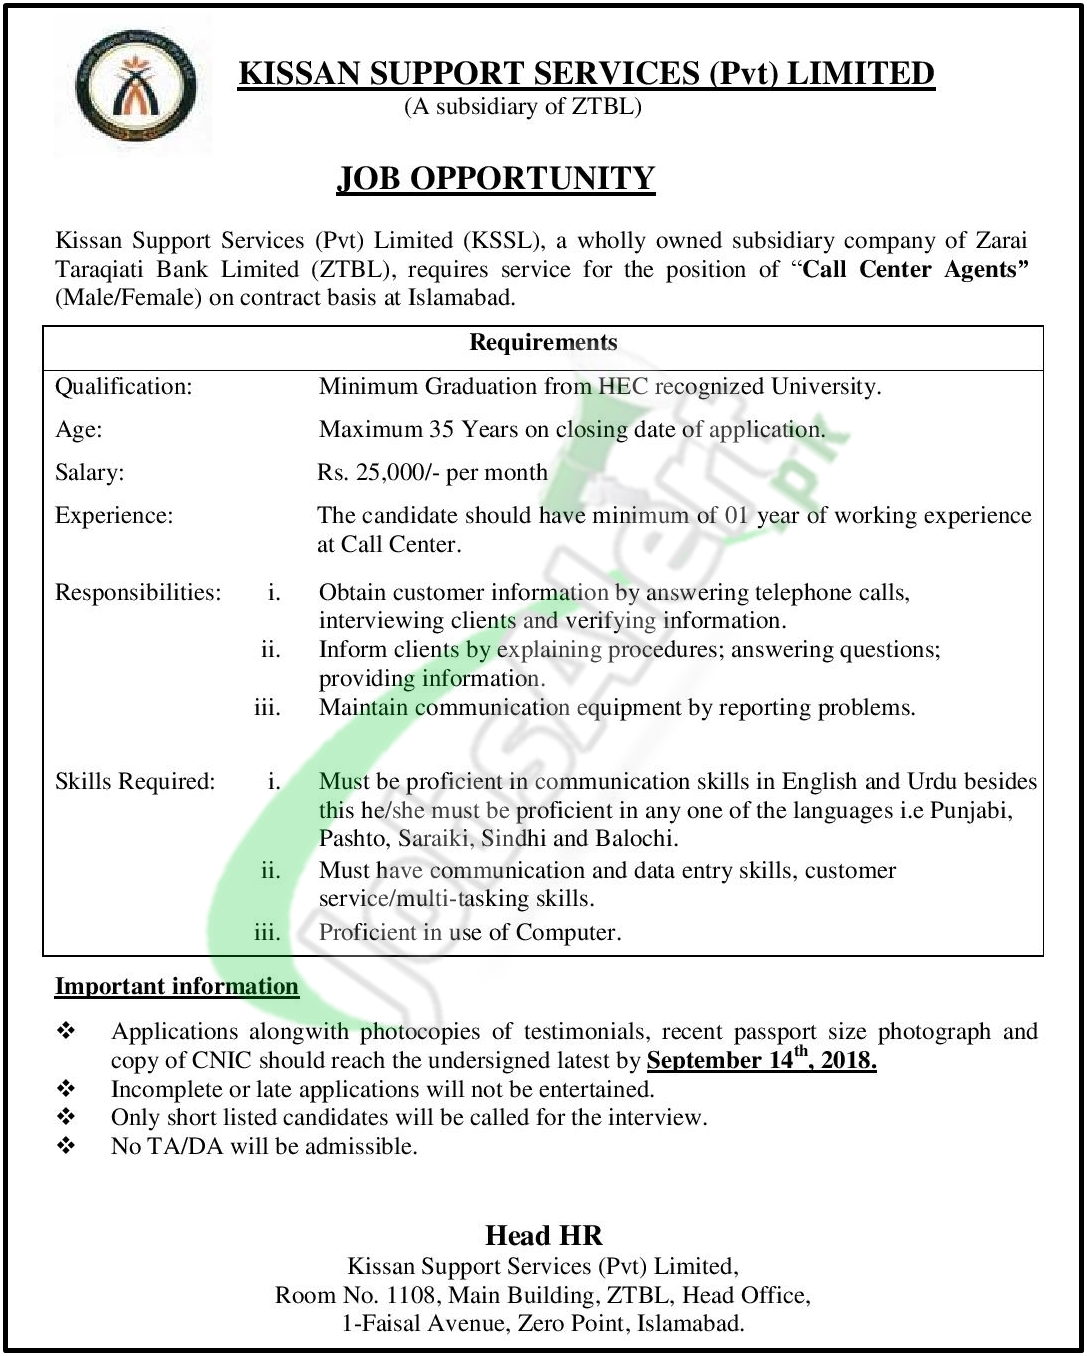 KSSL Jobs 2018 for Call Center Agents Application Form | www.kssl ...